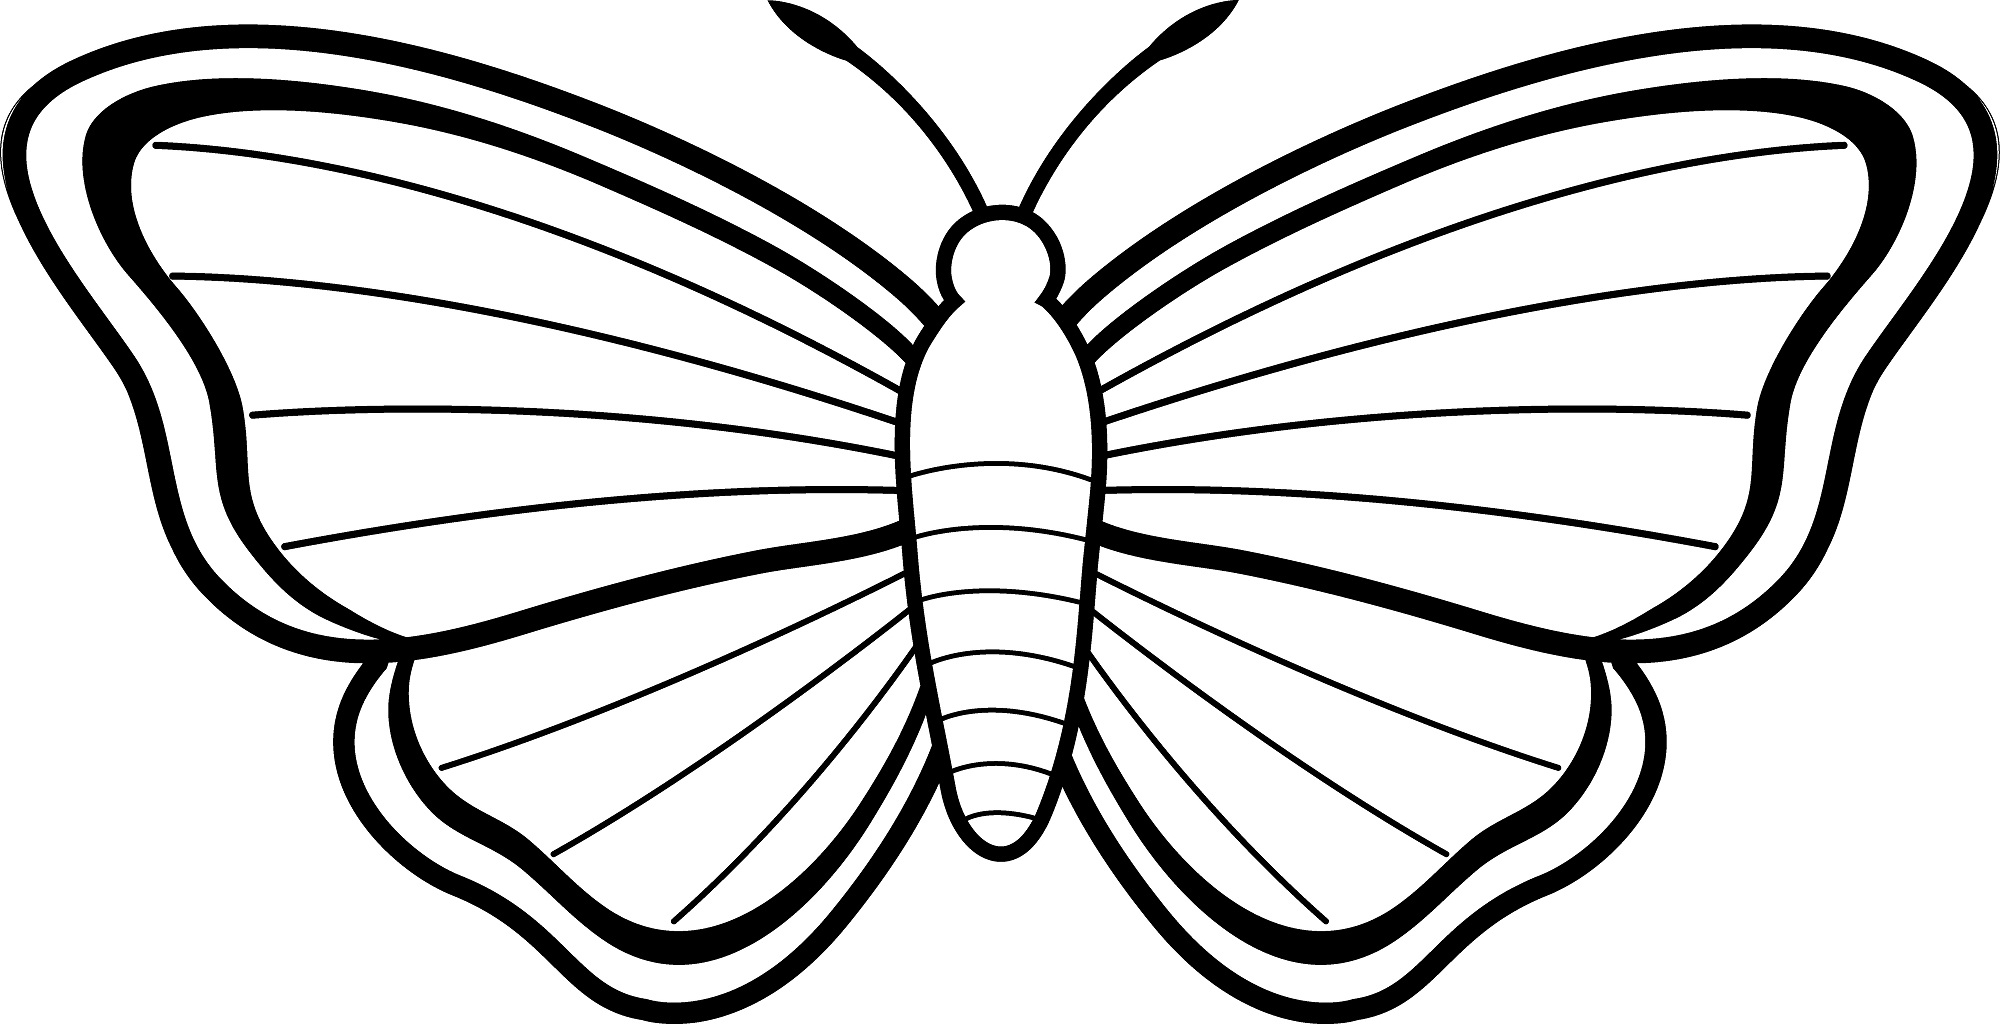 free printable butterfly coloring pages for kids - Coloring Pages Butterfly Kids